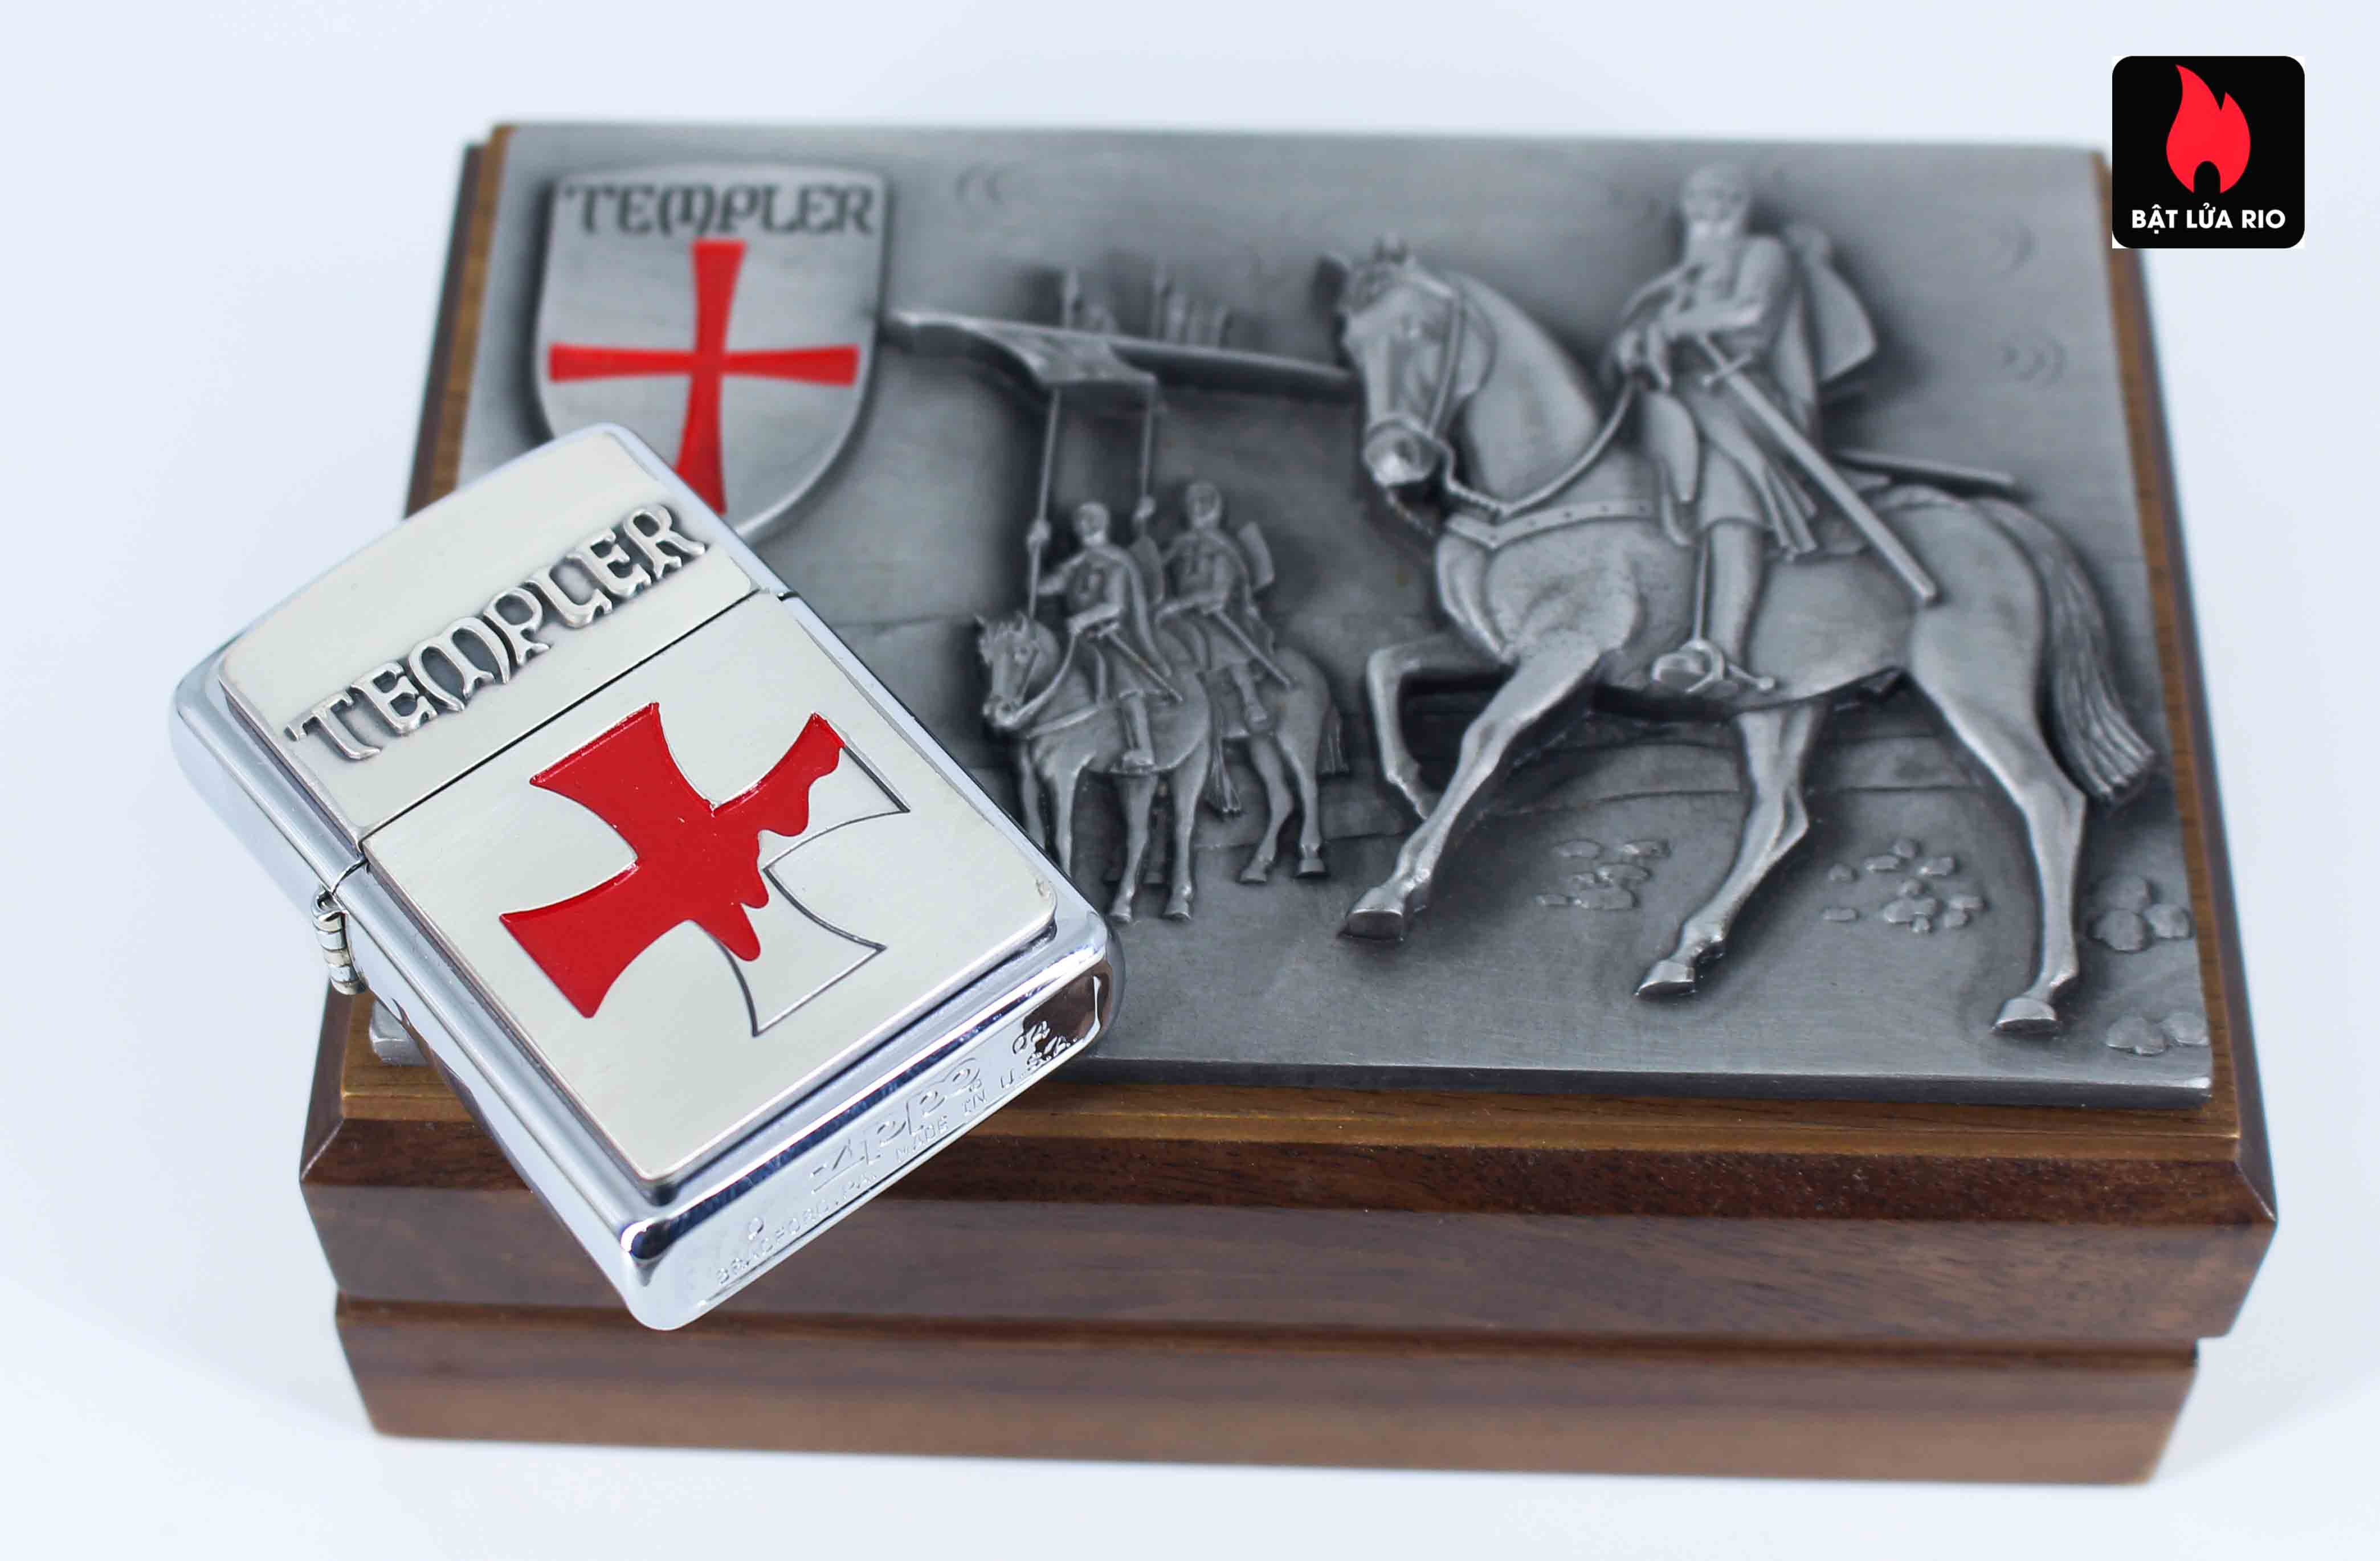 Zippo 2004 – Crusade – Templer Limited Edition 6